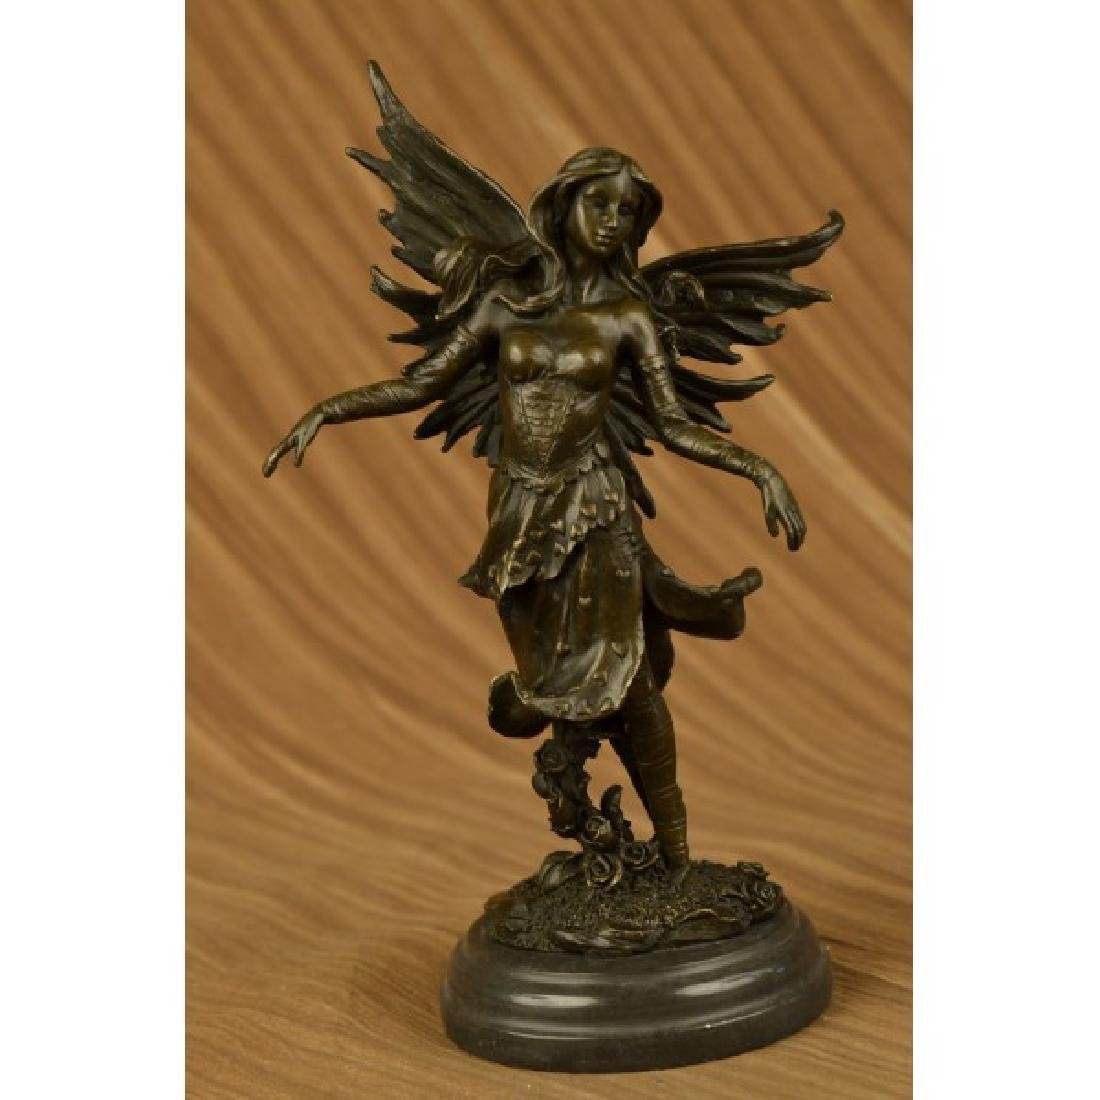 Mythical Bronze Fairy Angel Sculpture by Italian Artist